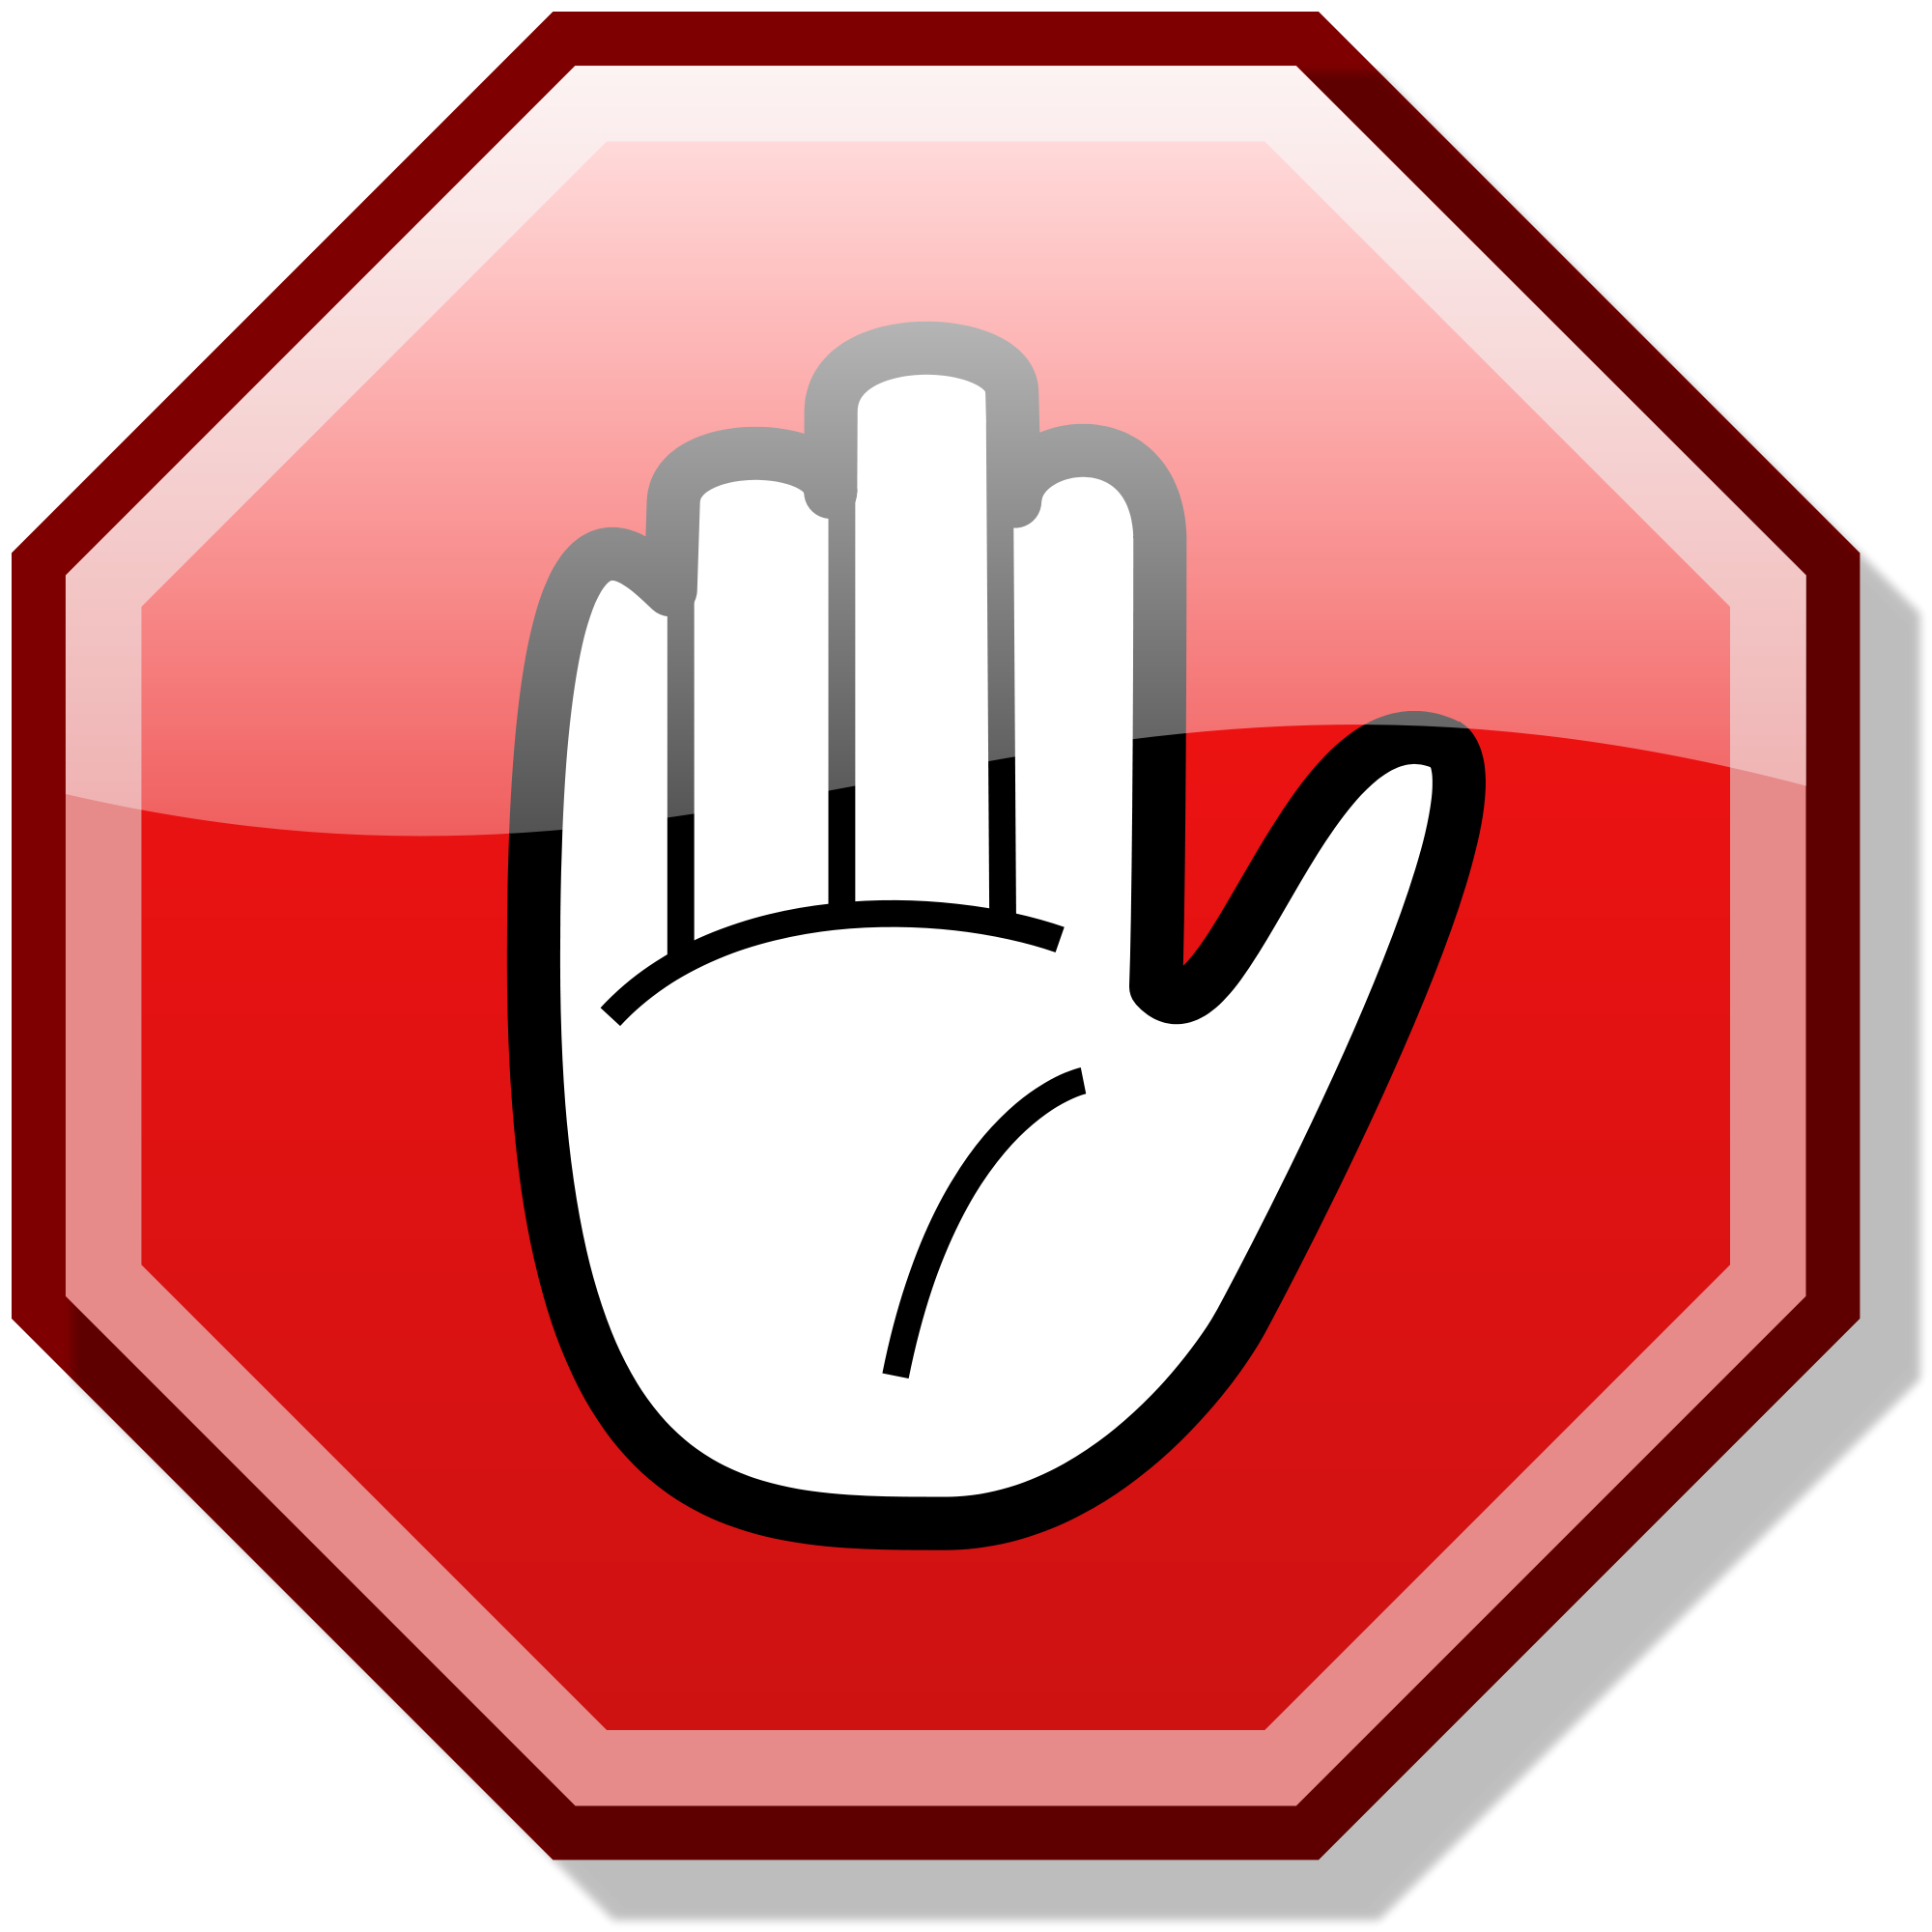 Stop clipart Art  Stop Sign Stop